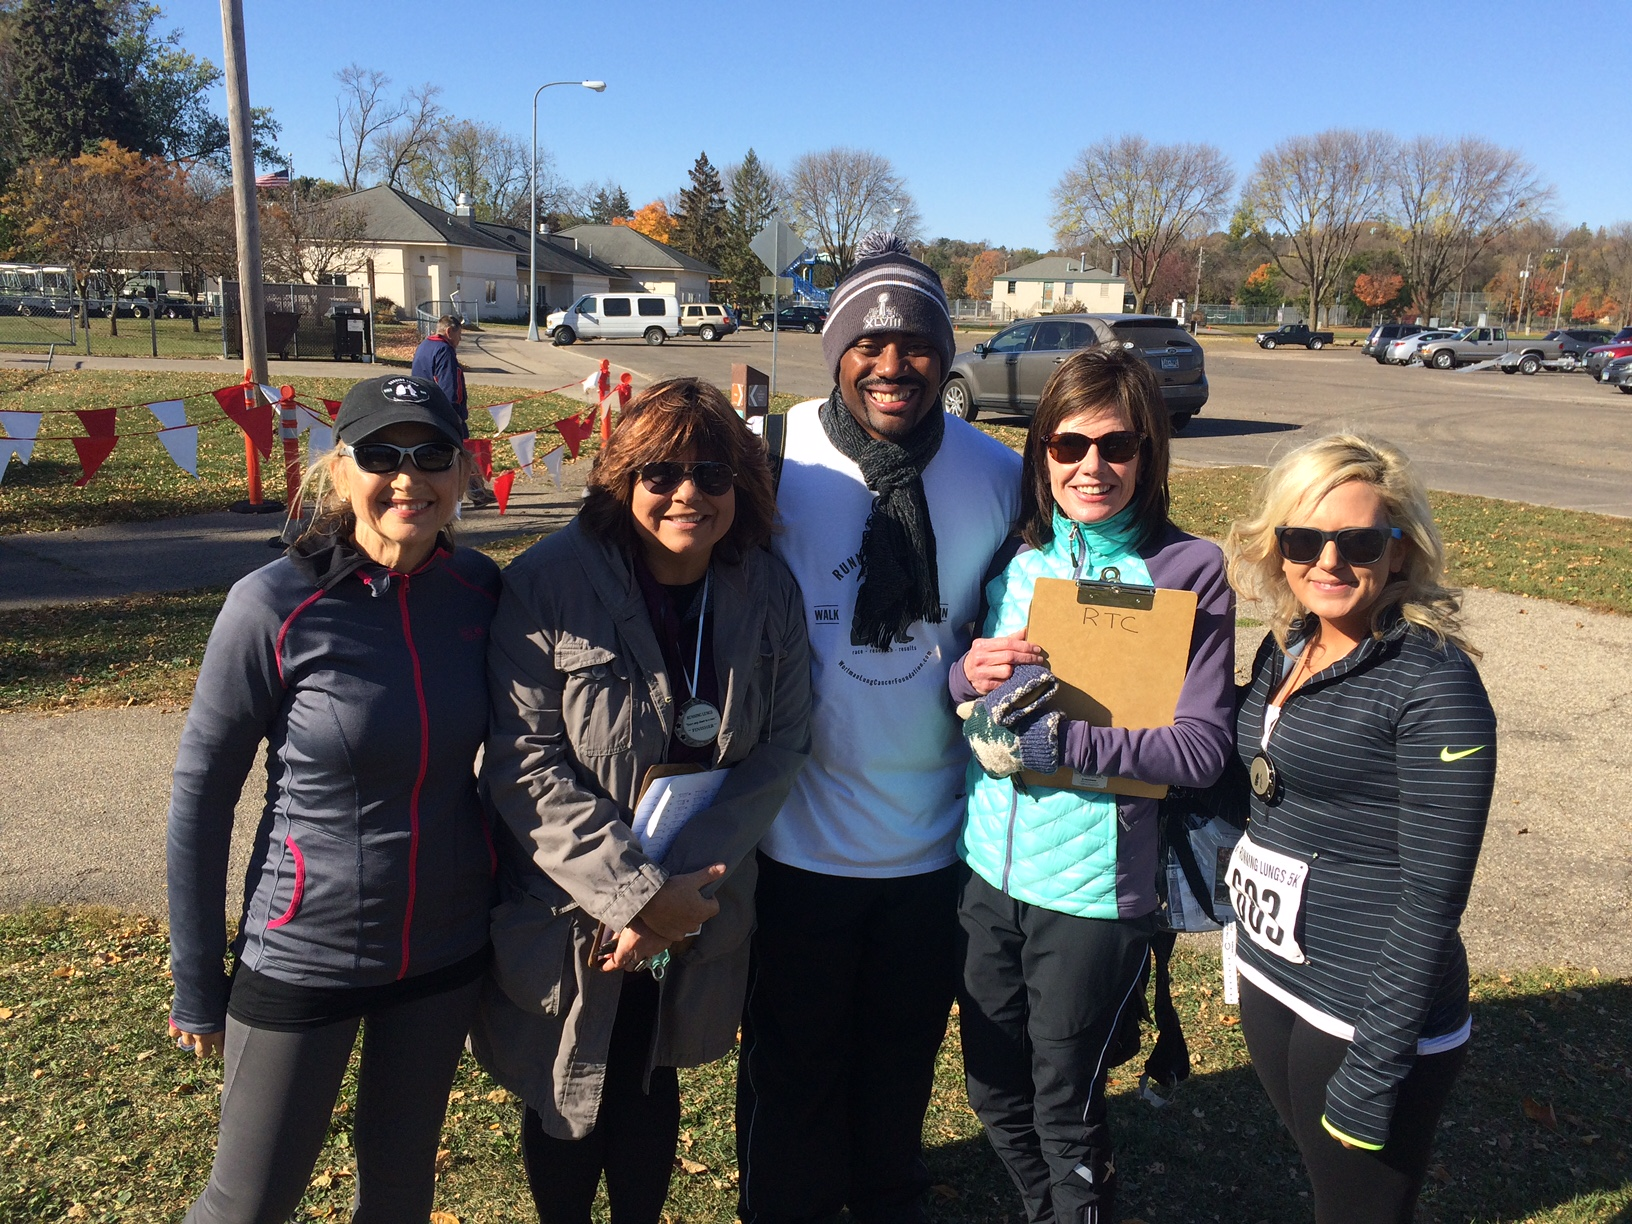 NFL Chris Draft attends Running Lungs Rochester in support of catching lung cancer in time.JPG